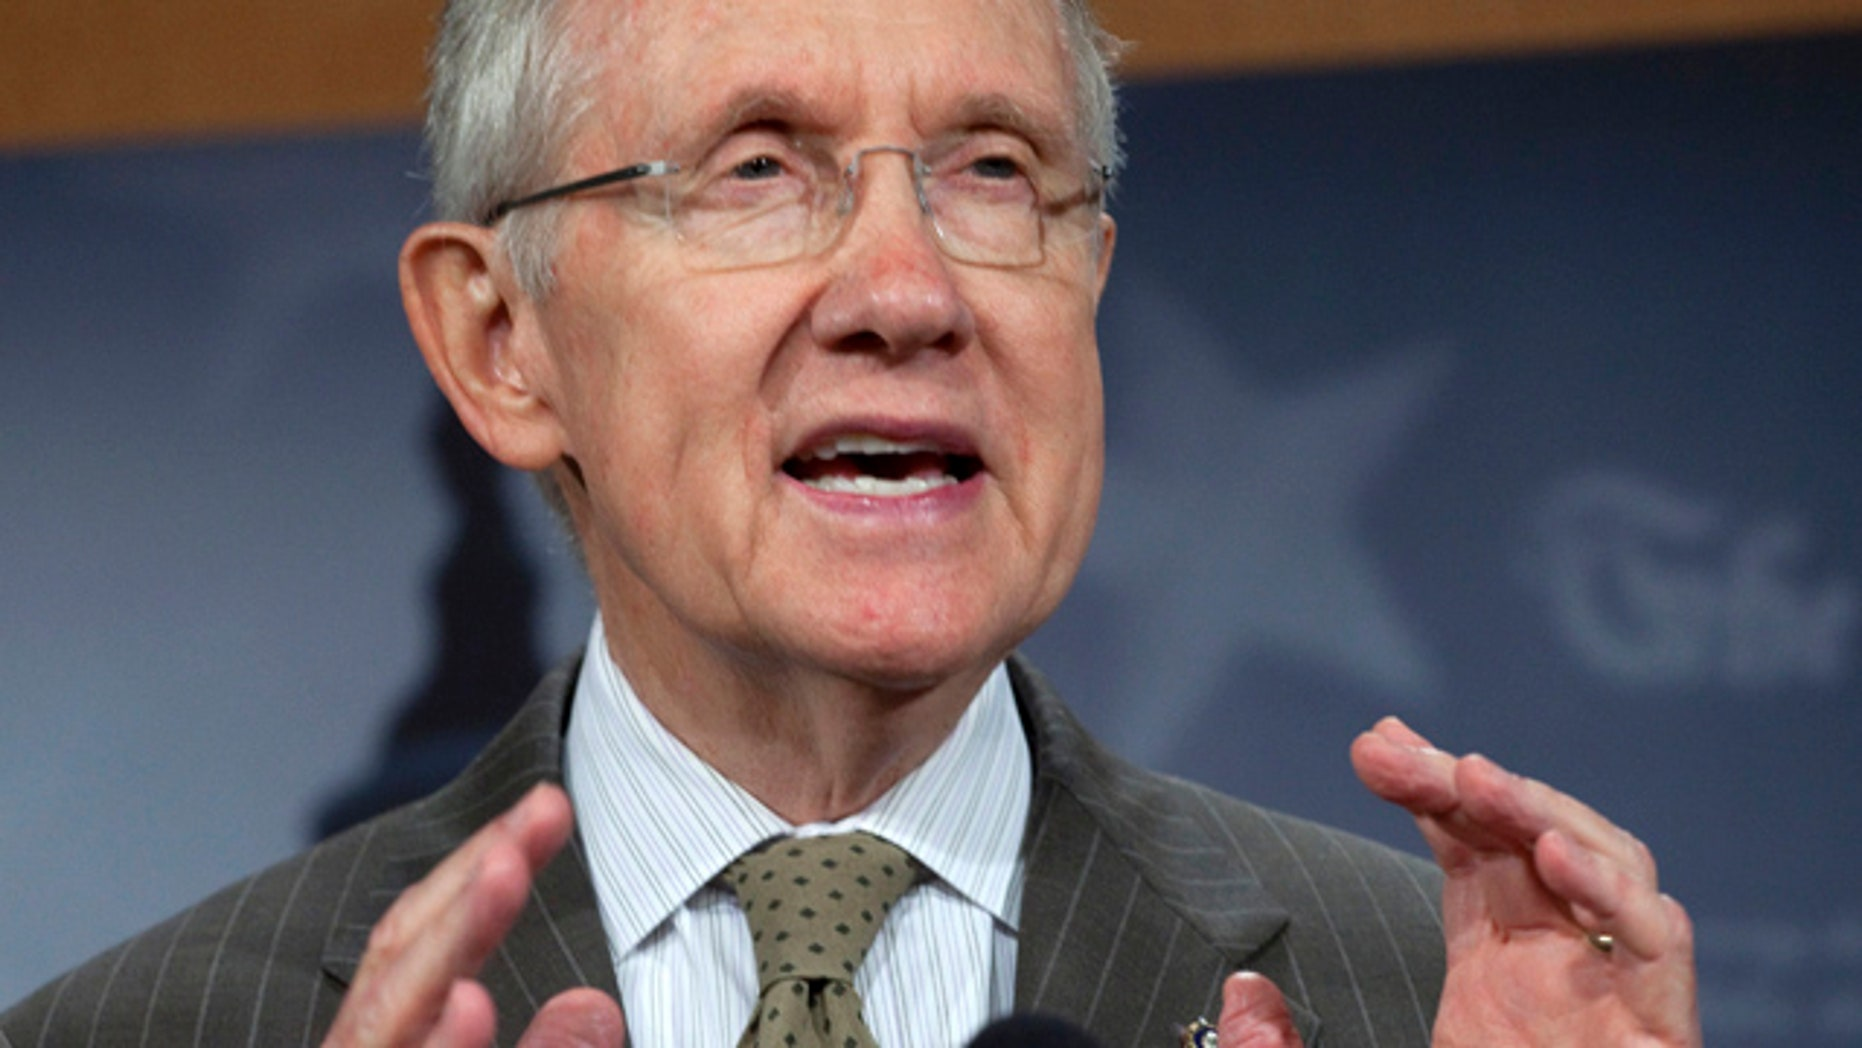 Sept. 22, 2011: Senate Majority Leader Harry Reid of Nevada gestures during a news conference on Capitol Hill.